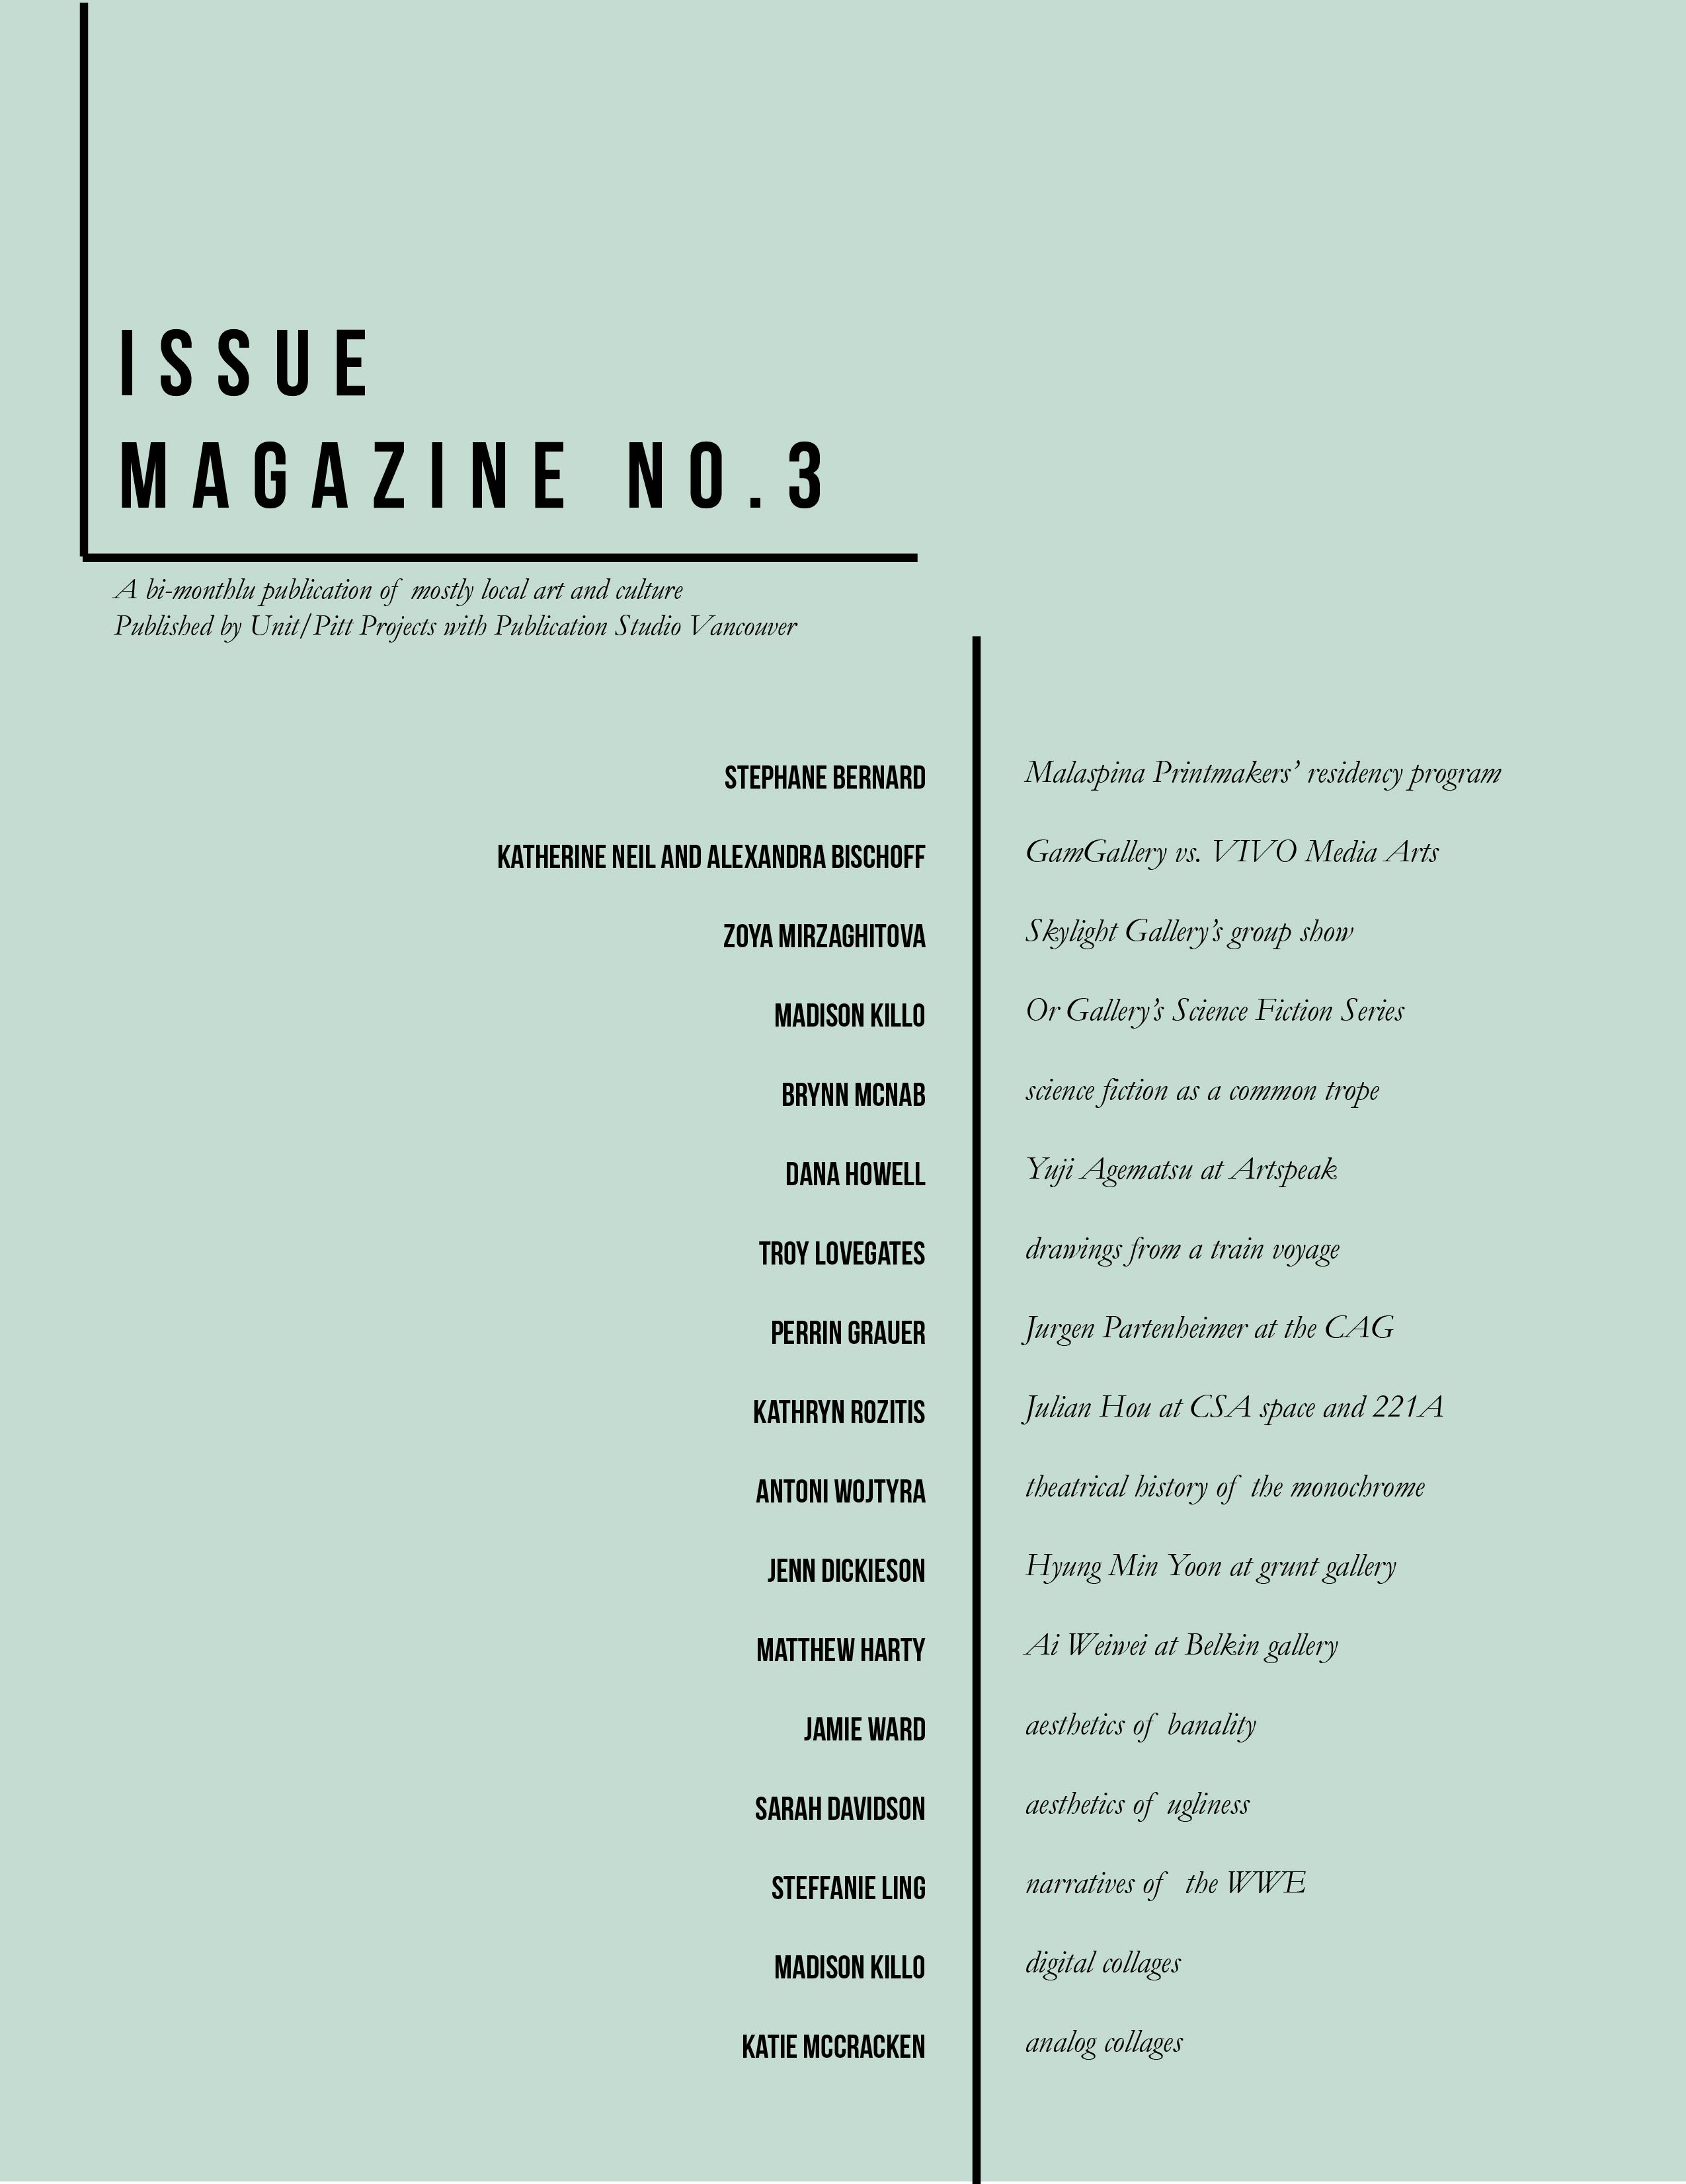 Pin By Krisztina Sztupakne On Table Of Contents Table Of Contents Magazine Table Of Contents Magazine Table Table of contents design template